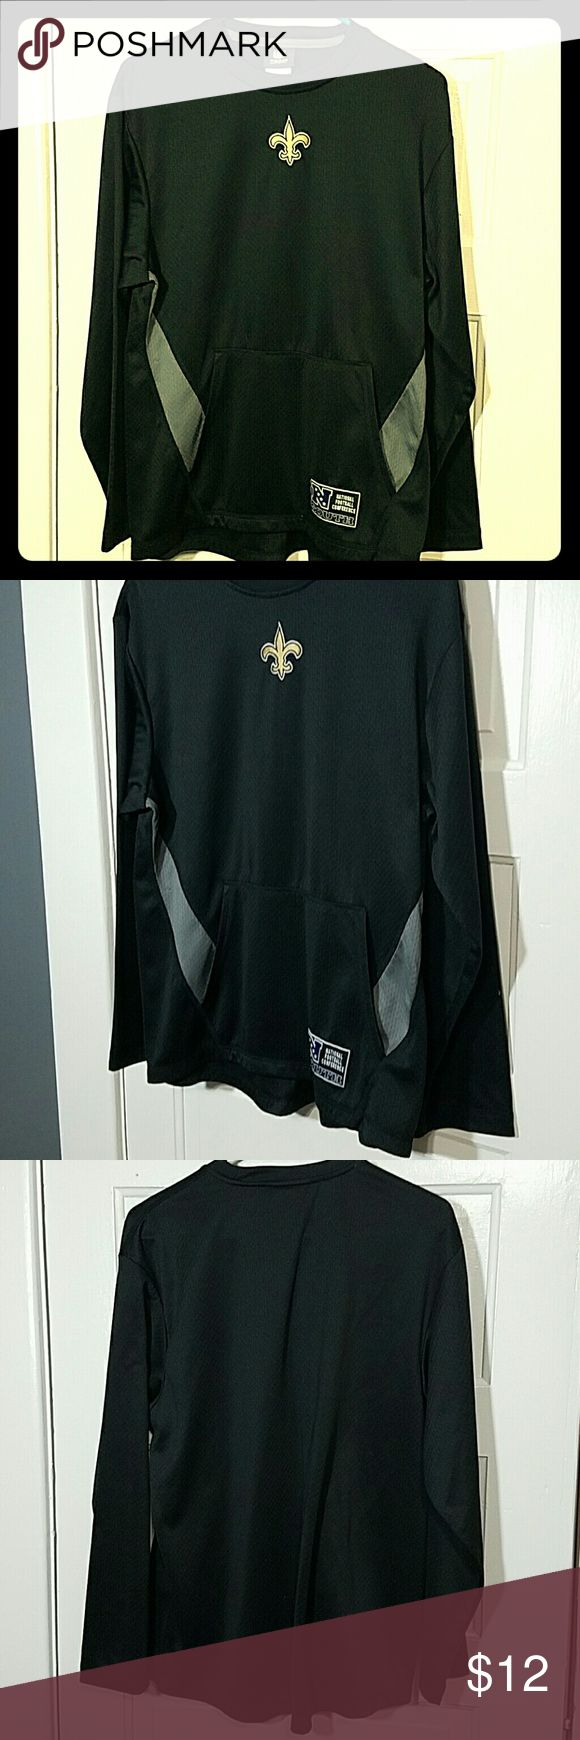 NFL Saints Long-sleeved Shirt Black with gray detail long sleeve shirt with Saints team logo stitched on front. National Football Conference South stitched on pocket.  See picture 4 for fabric detail - looks similar to a jersey.  Front kangaroo pocket. NFL Team Apparel Shirts Tees - Long Sleeve